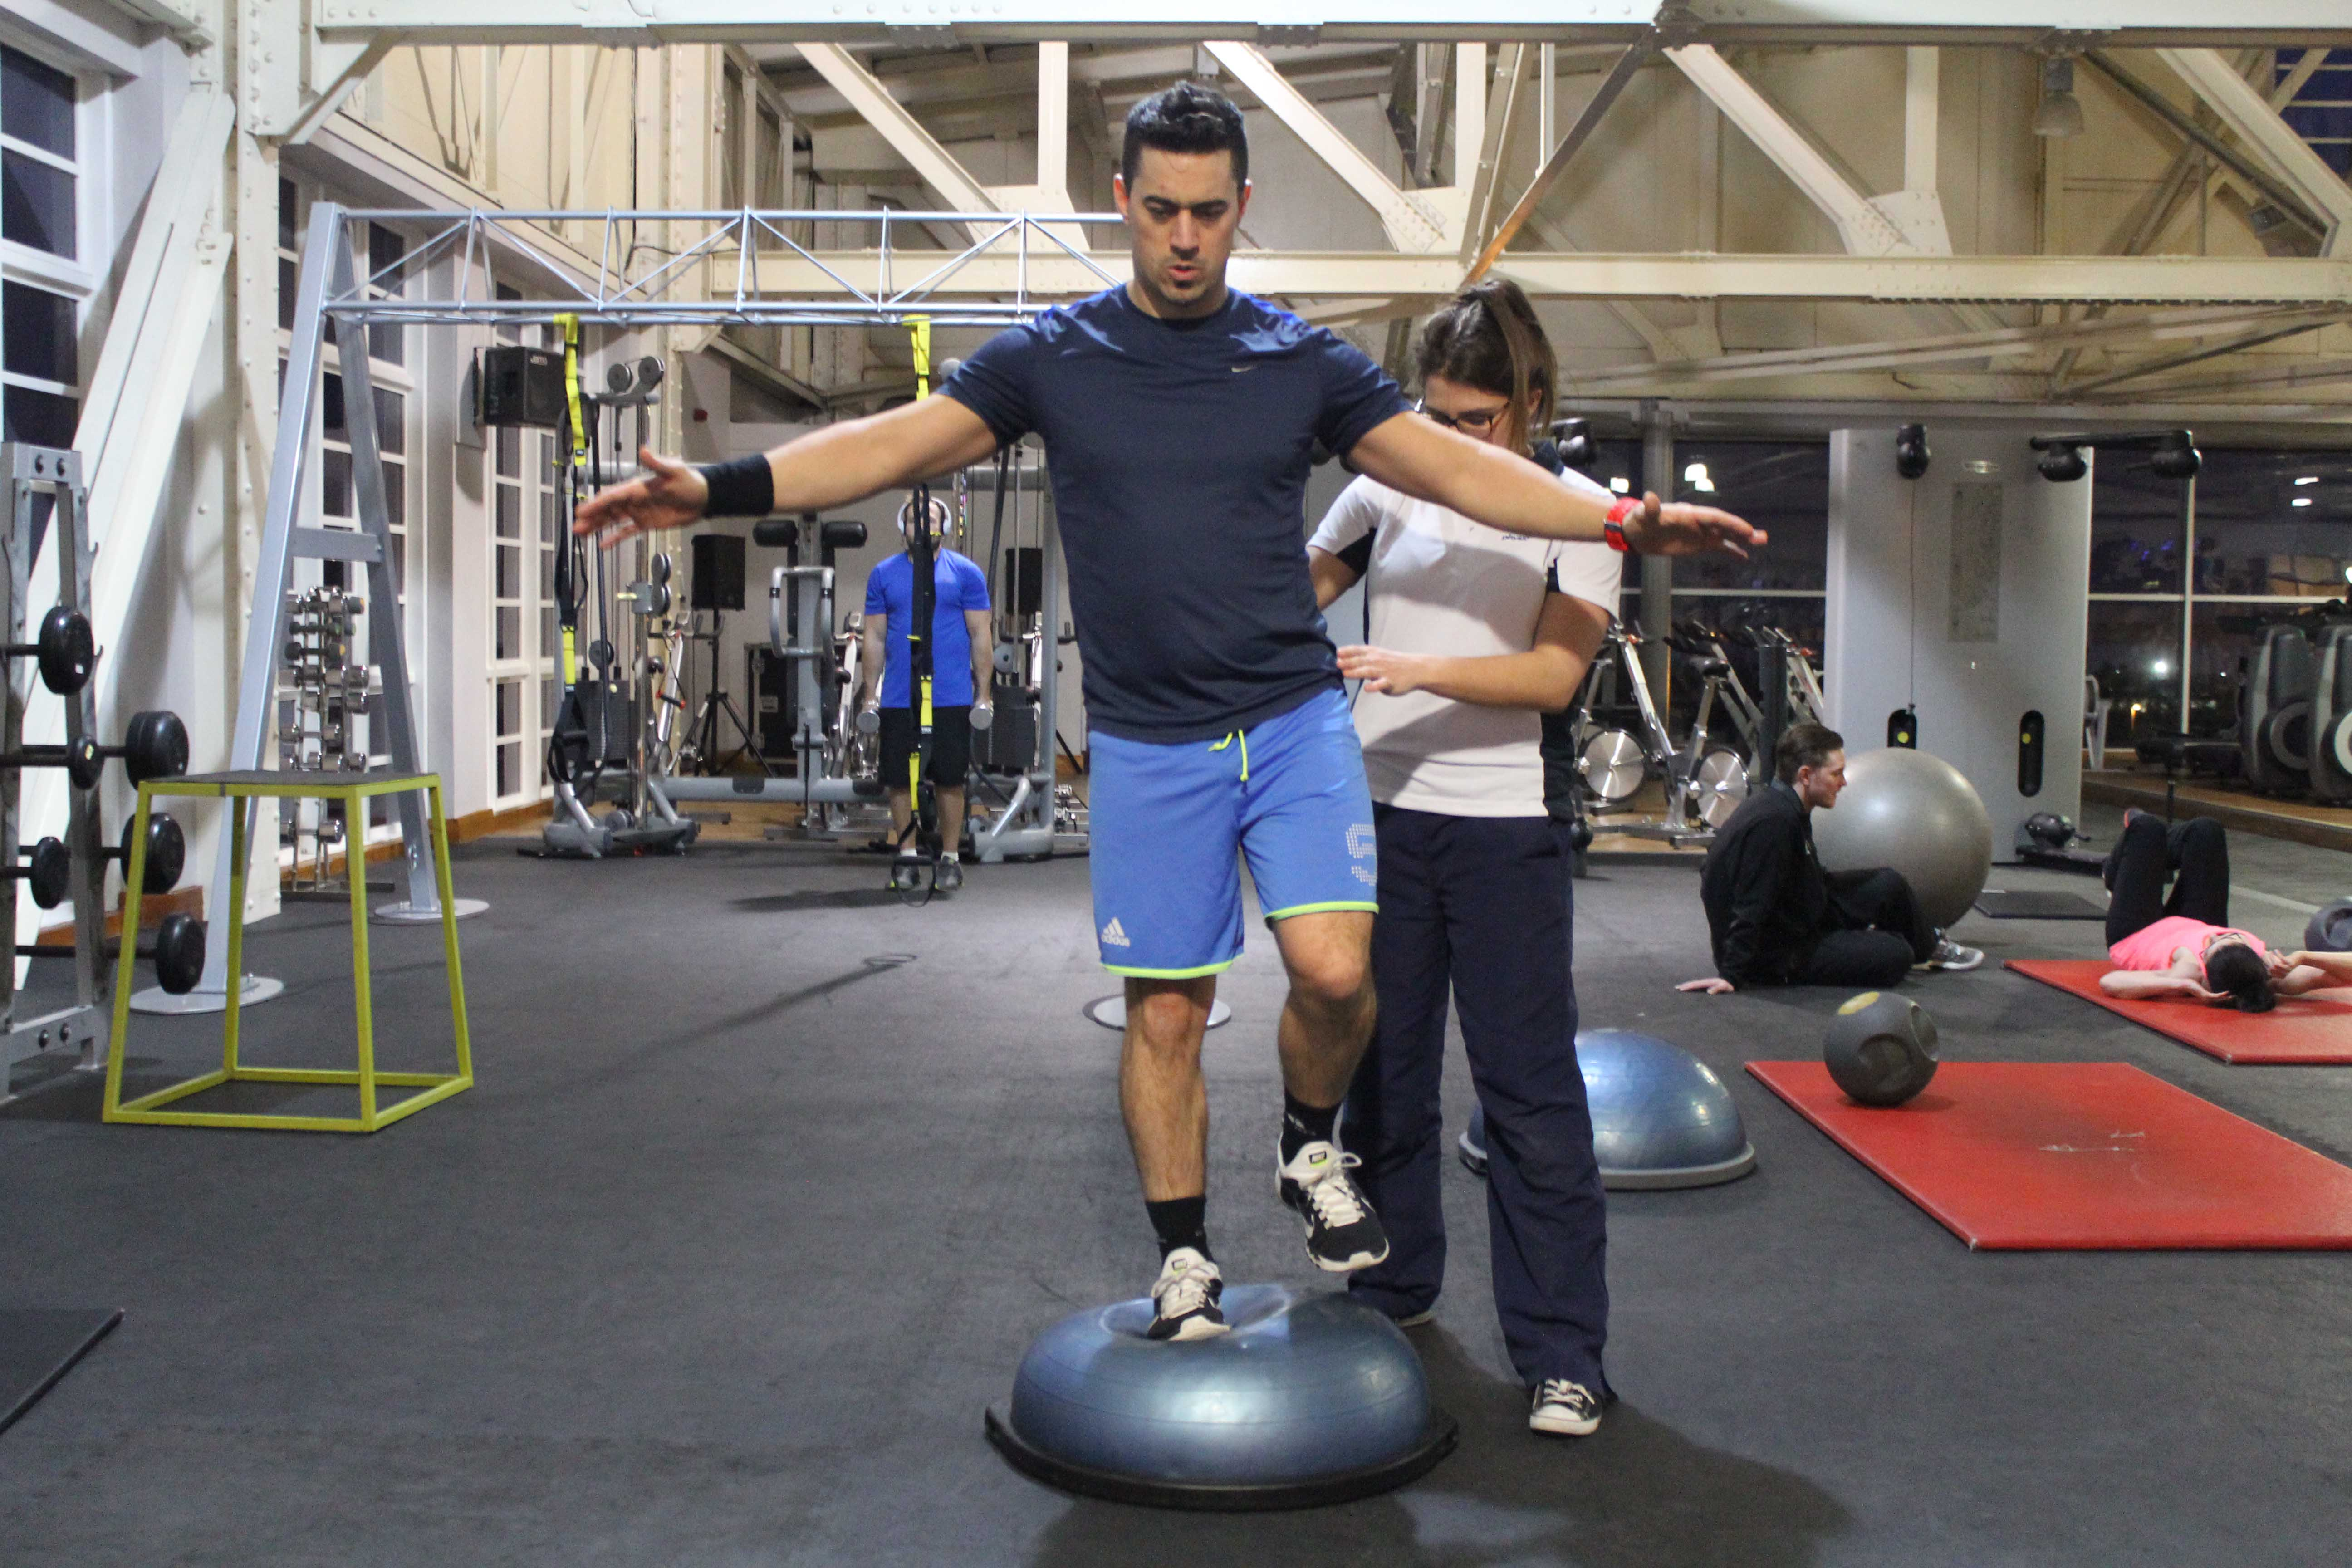 Knee stability exercises supervised by specialist MSK physiotherapist